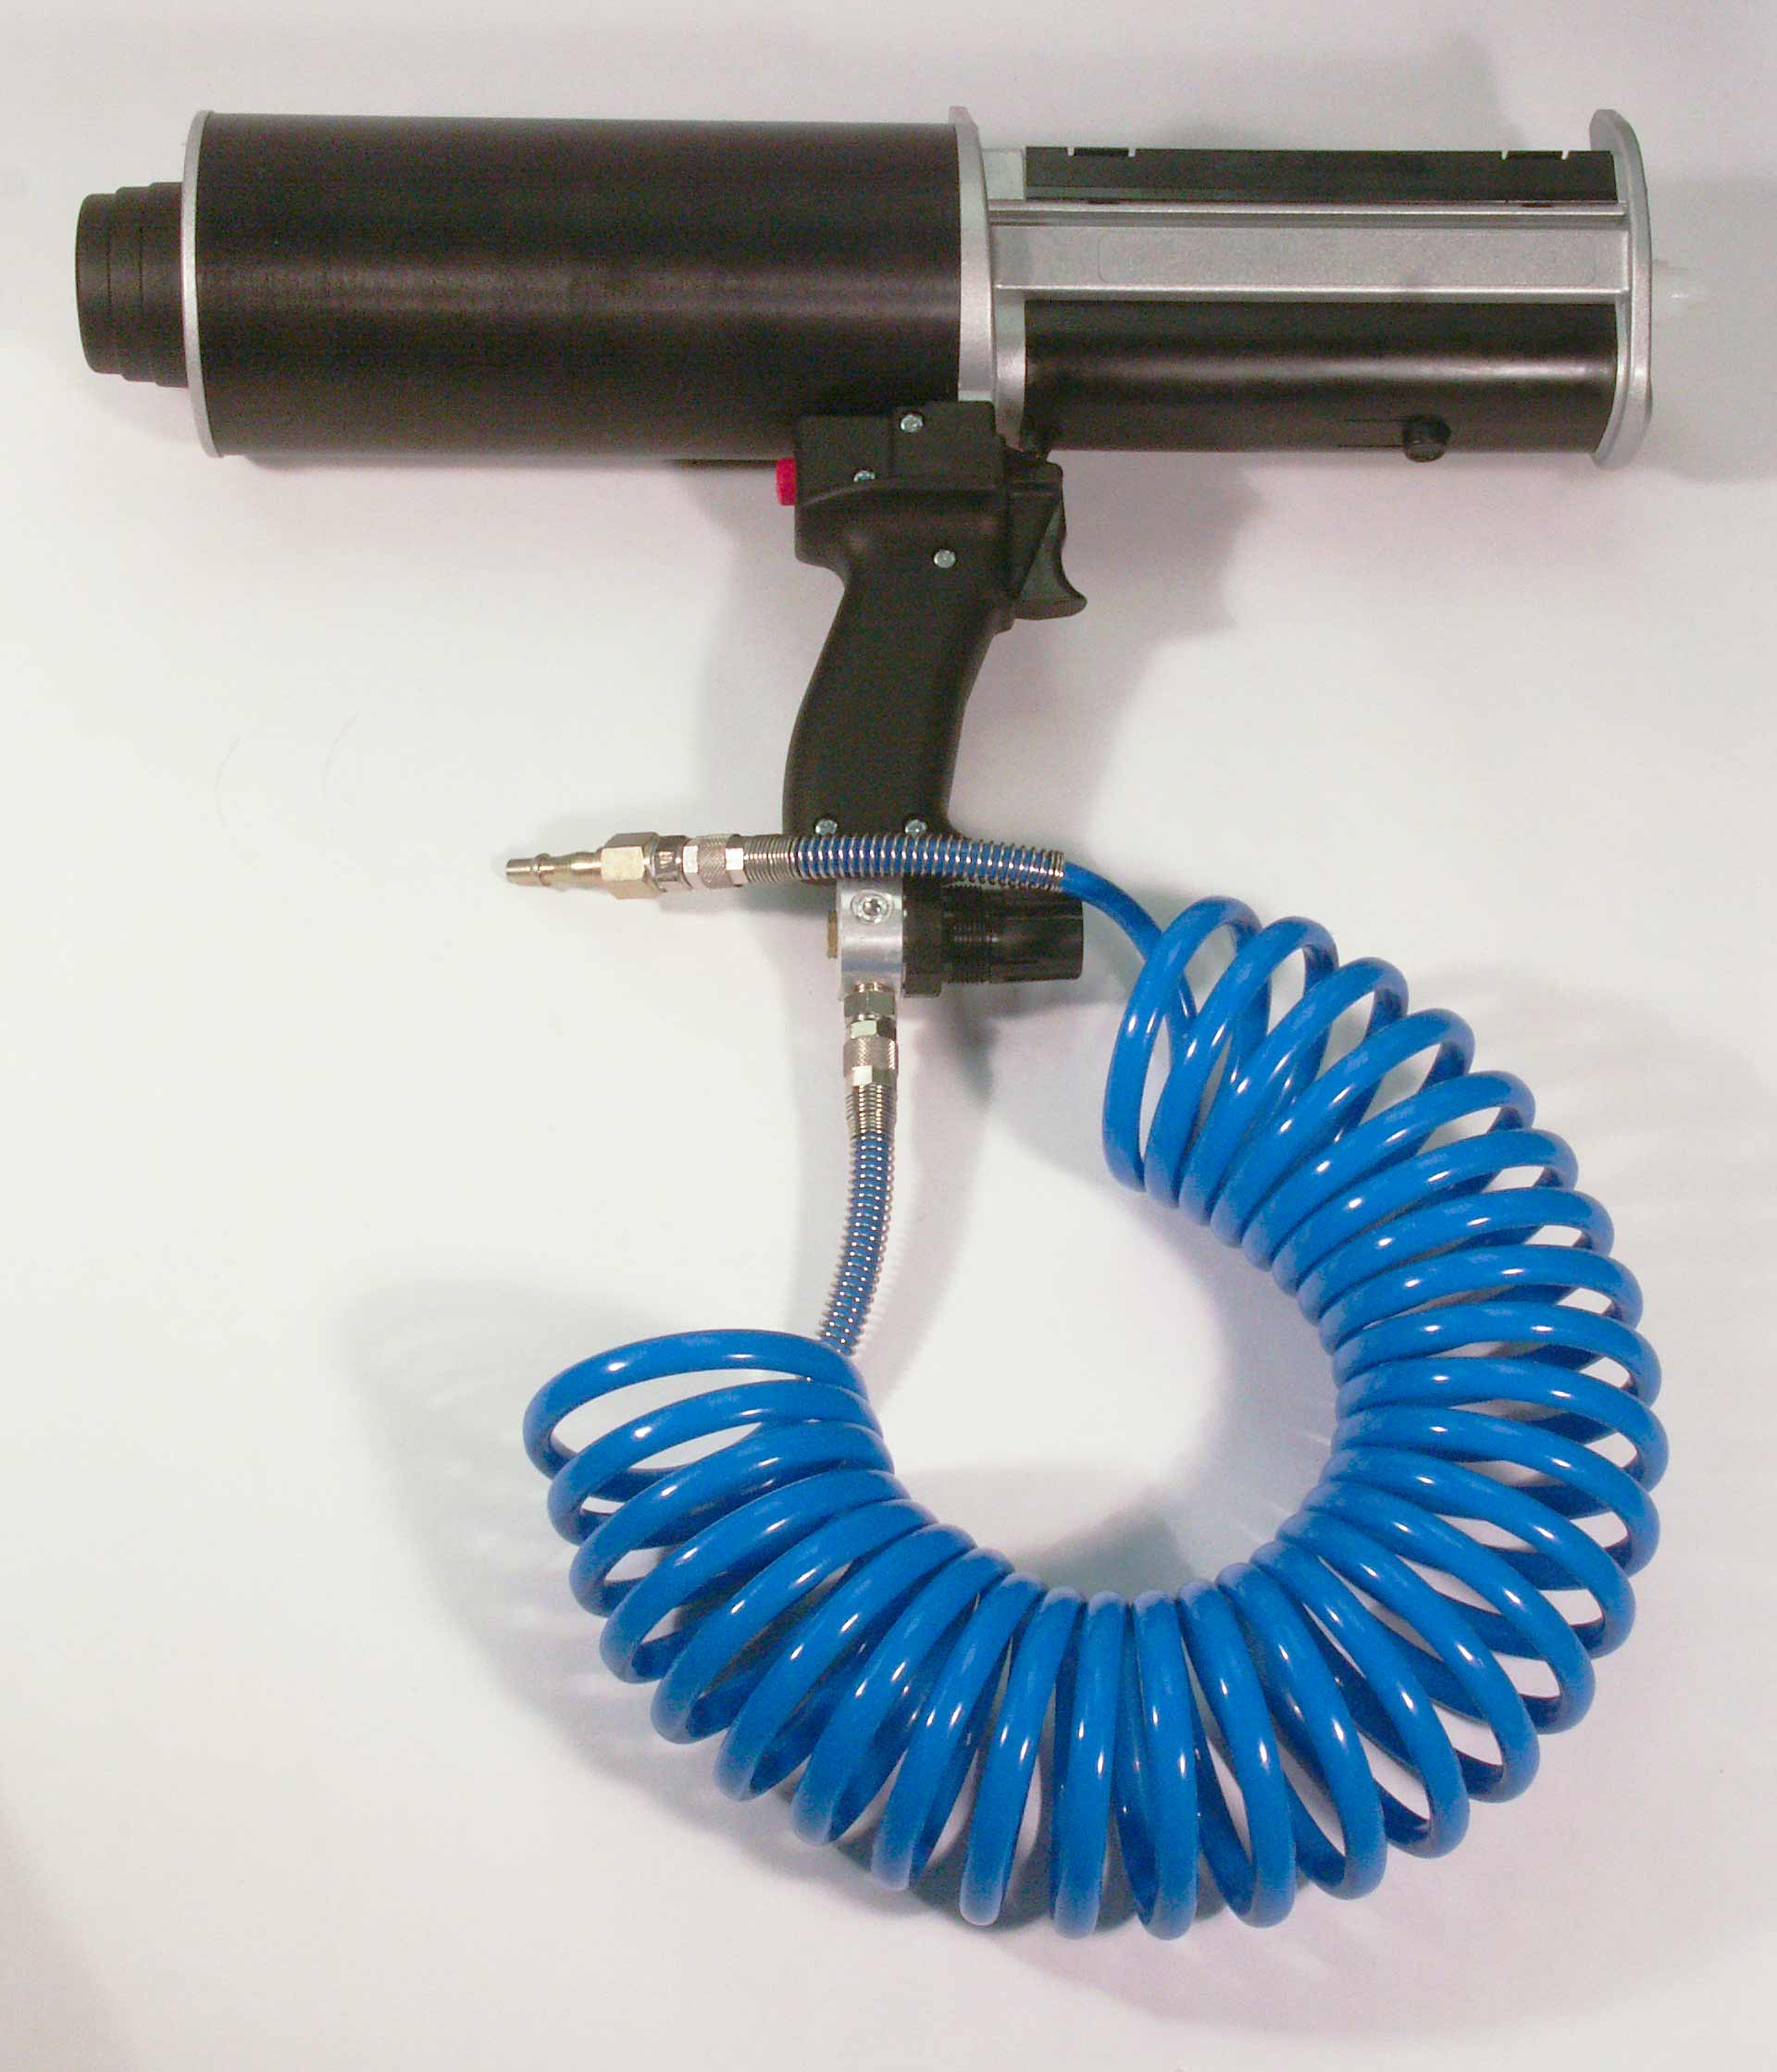 DP400 Pneumatic Dispensing Gun with the airline attached